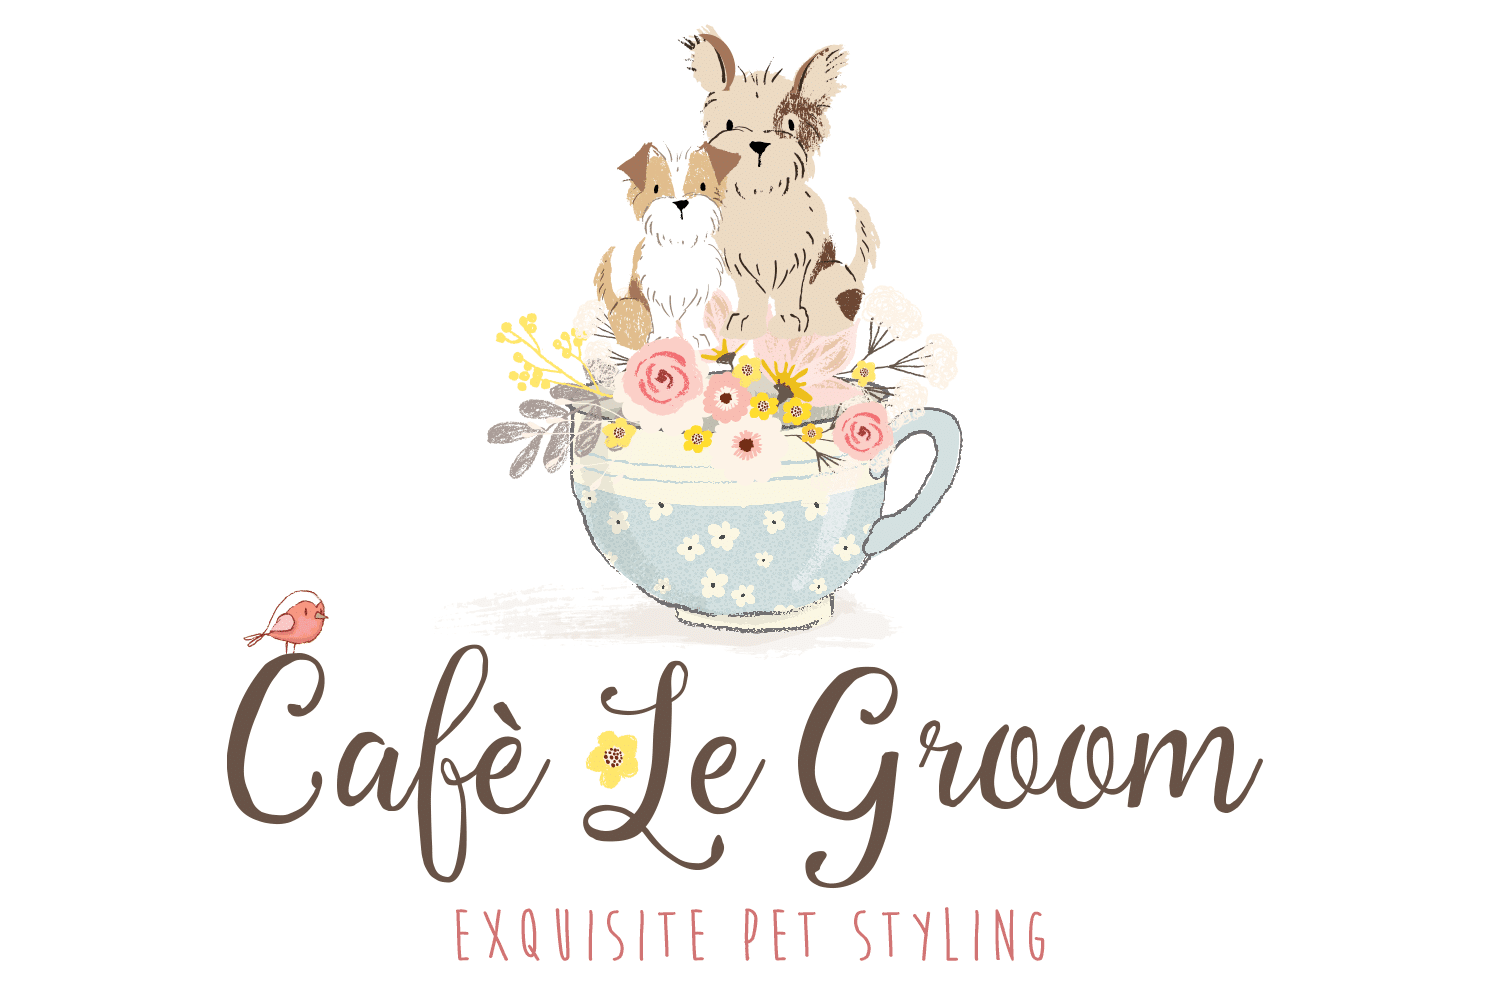 https://sdyouthservices.org/wp-content/uploads/2021/04/Cafe-le-groom.png